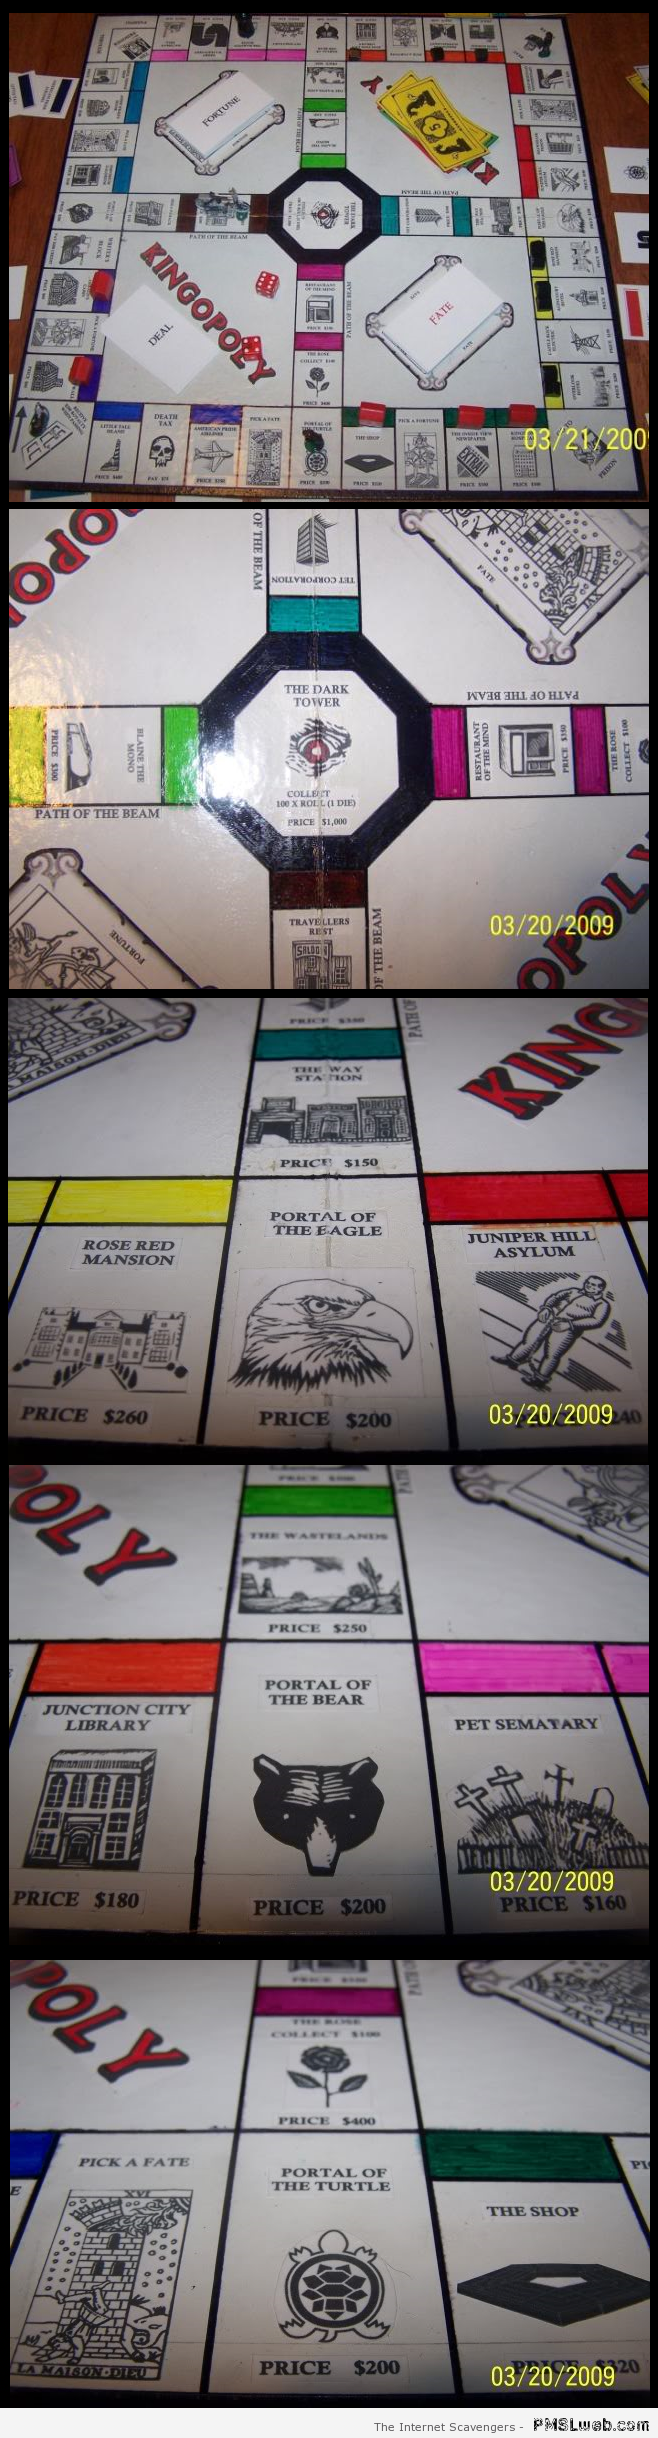 Stephen King monopoly at PMSLweb.com